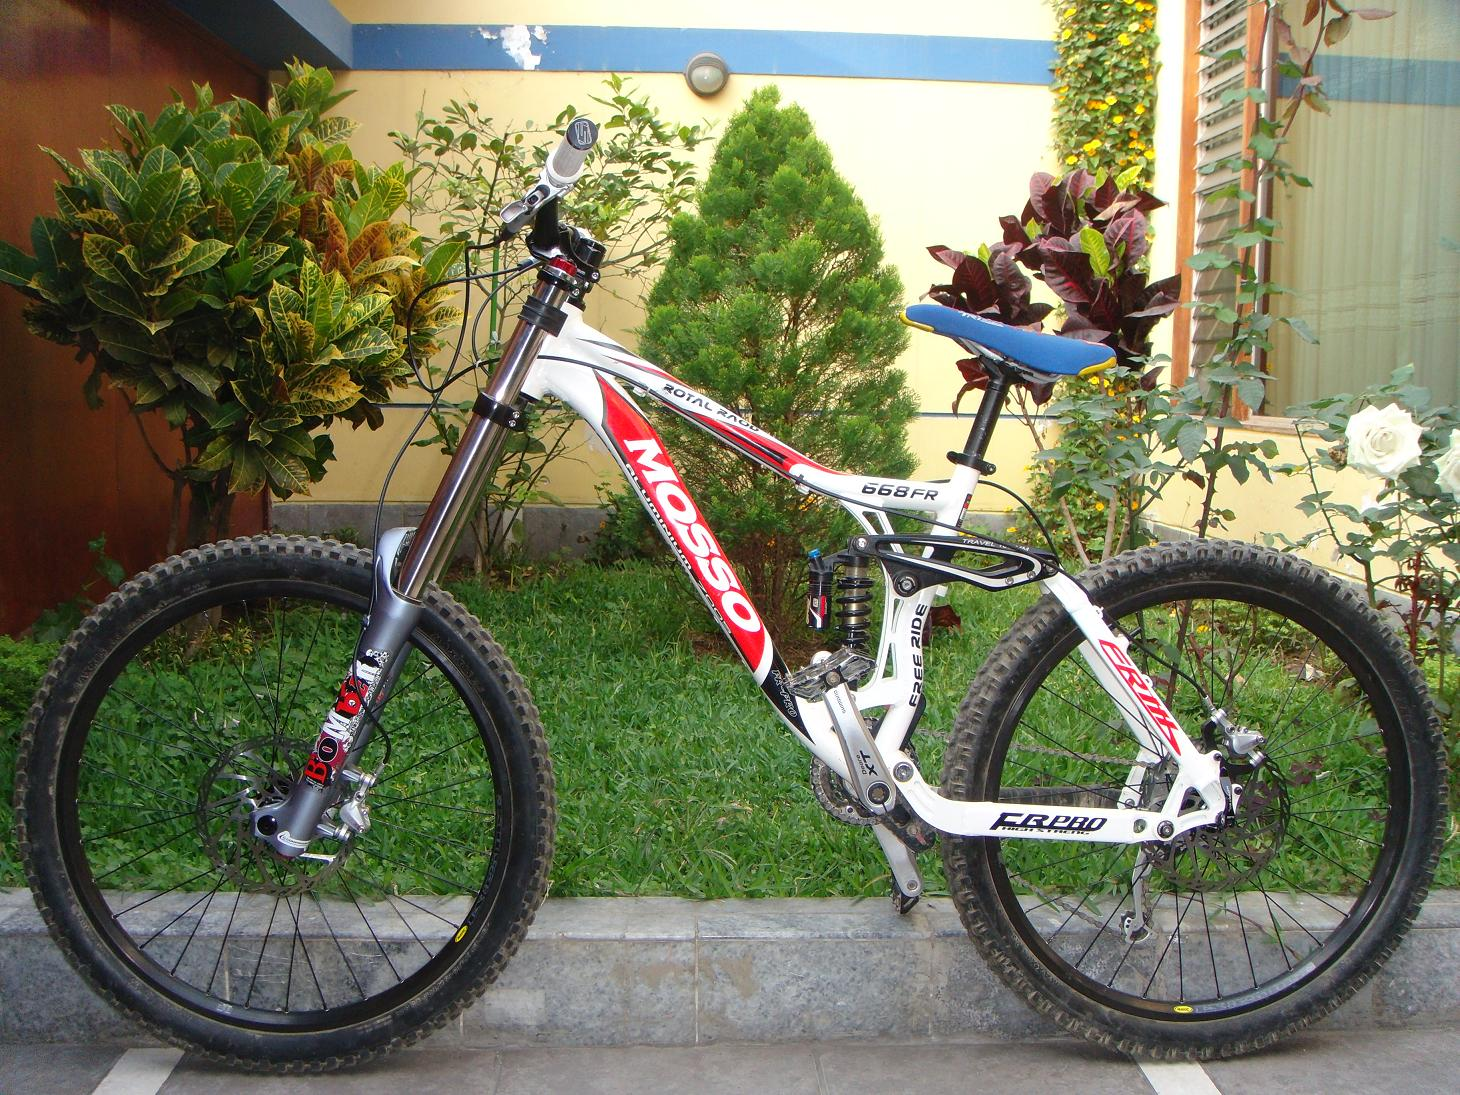 Mosso Full Suspension Frame Philippines 669 Xc Pro Bike What You Think About It Mtbr Com